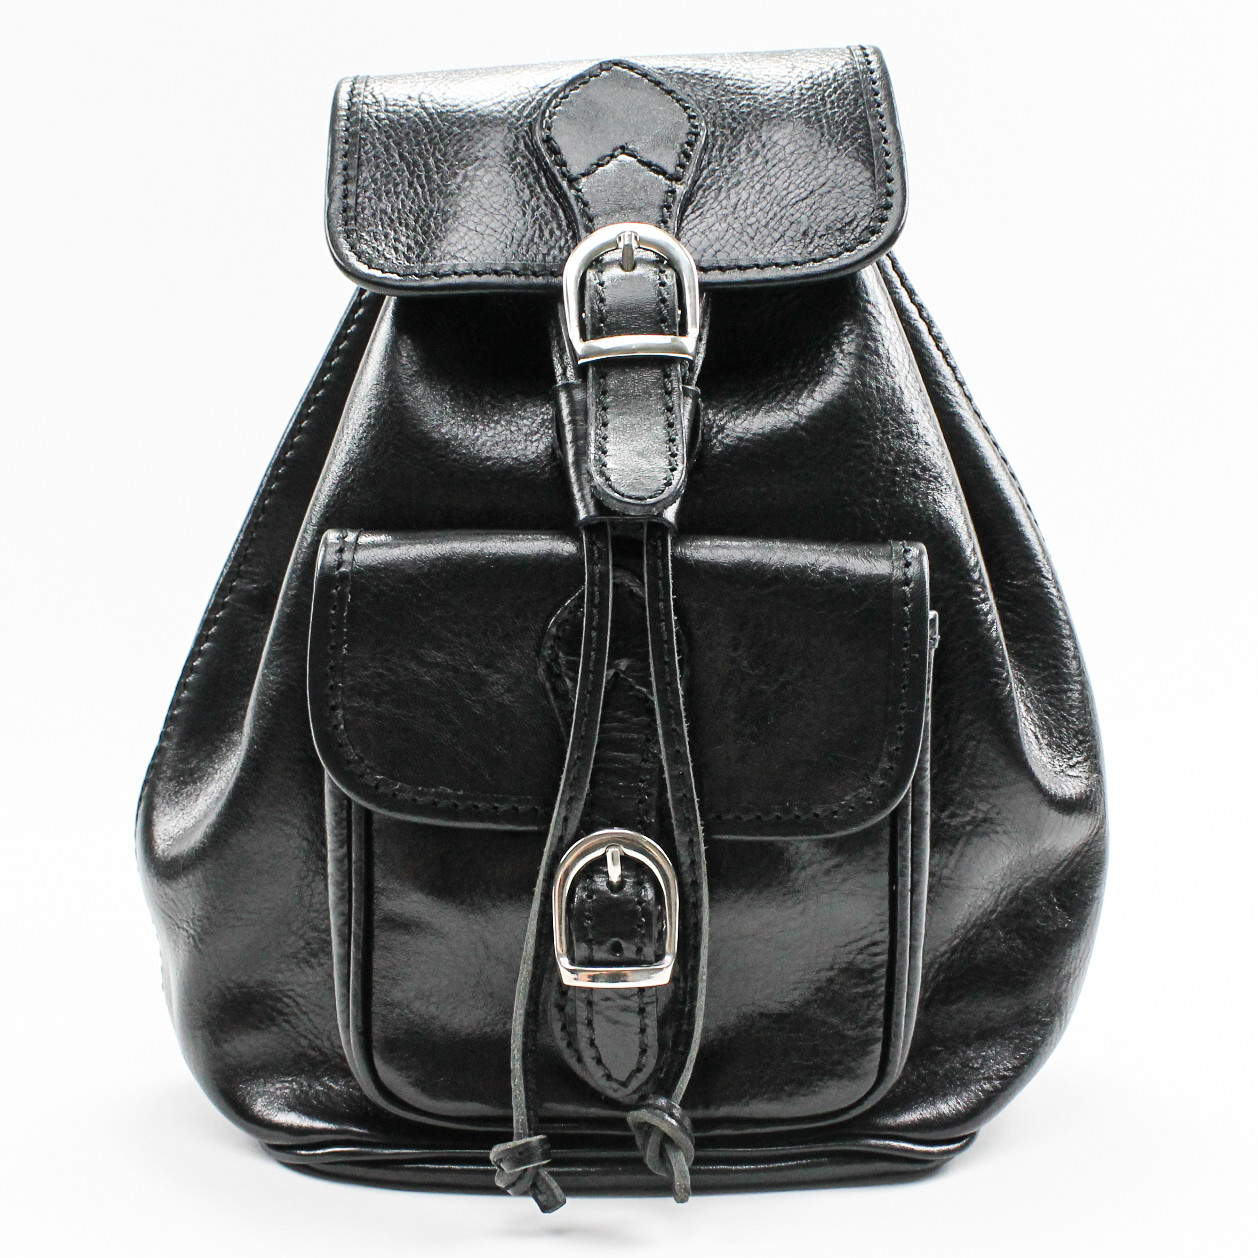 Alberto Bellucci - The Bardi Italian Leather Backpack